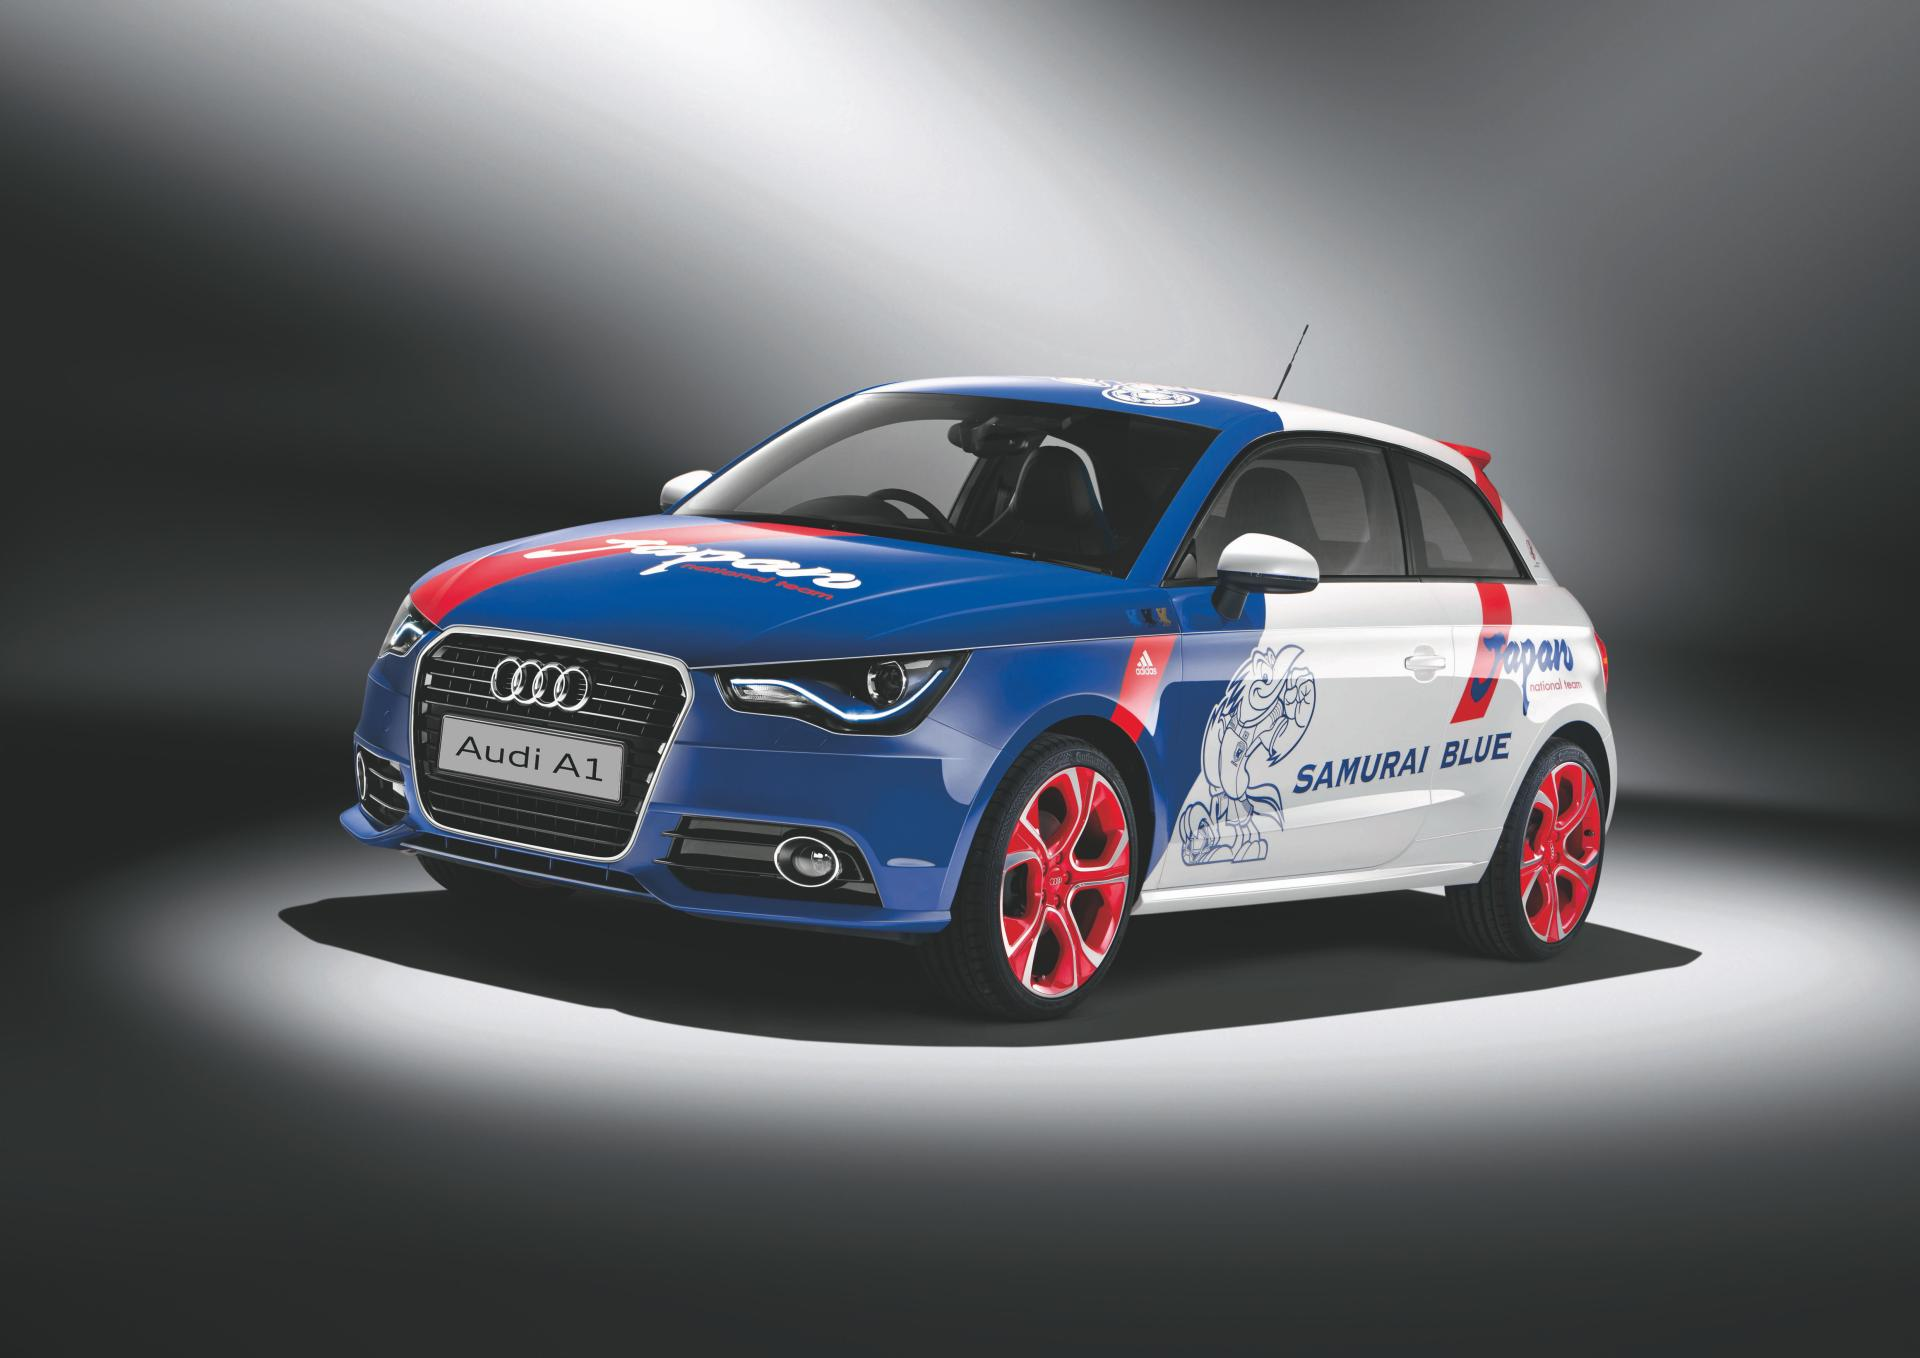 2012 audi a1 samurai blue technical specifications and. Black Bedroom Furniture Sets. Home Design Ideas